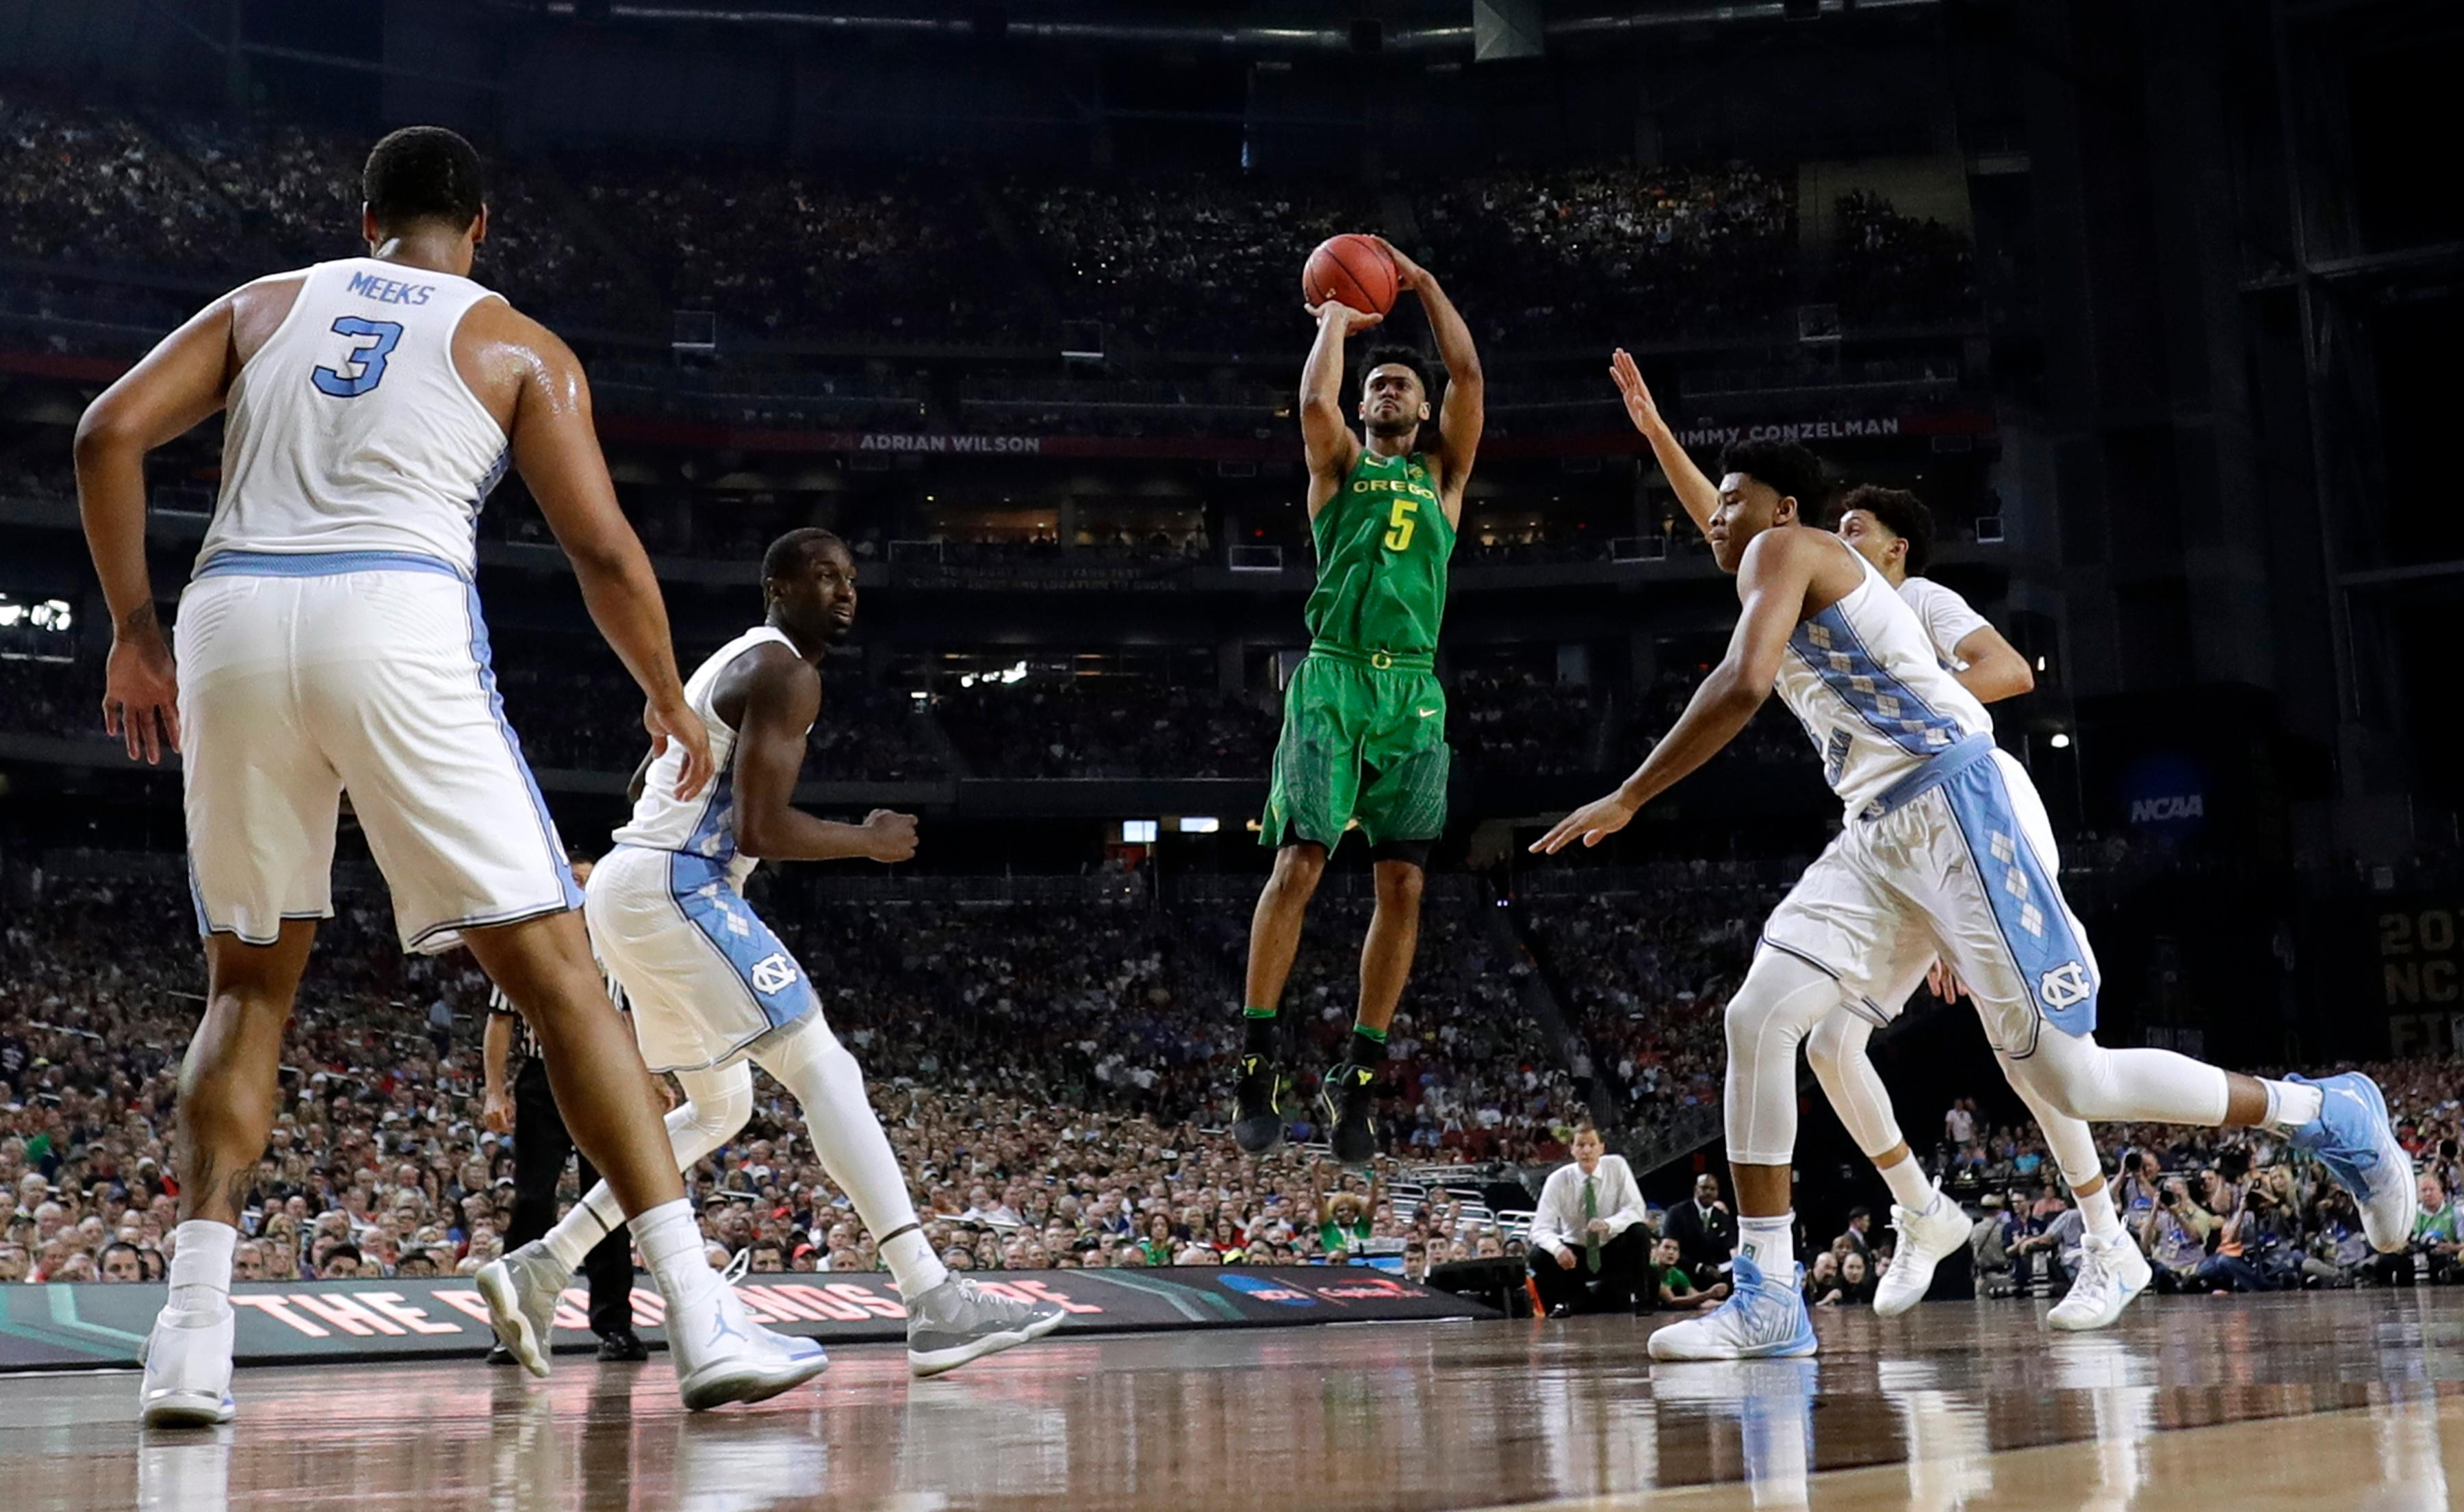 Oregon guard Tyler Dorsey (5) shoots over North Carolina defenders during the first half in the semifinals of the Final Four NCAA college basketball tournament, Saturday, April 1, 2017, in Glendale, Ariz. (AP Photo/David J. Phillip)